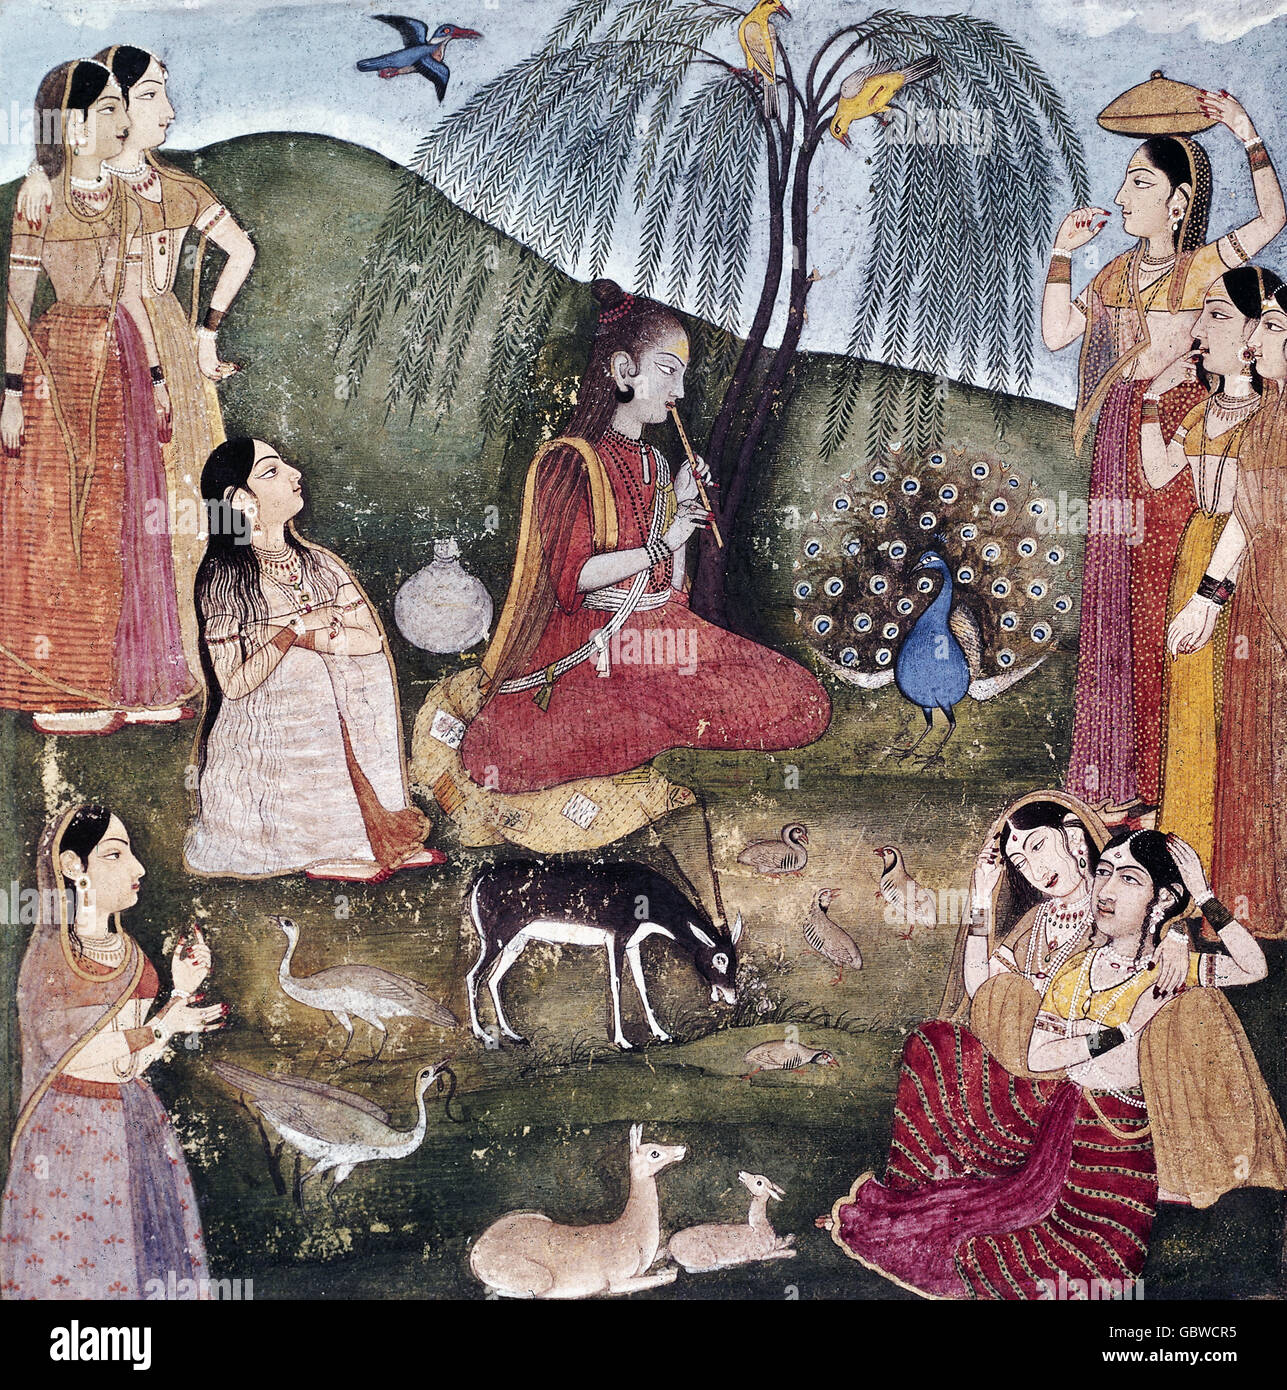 Fine Arts India Miniature Miniatures The Wounderful Playing Of